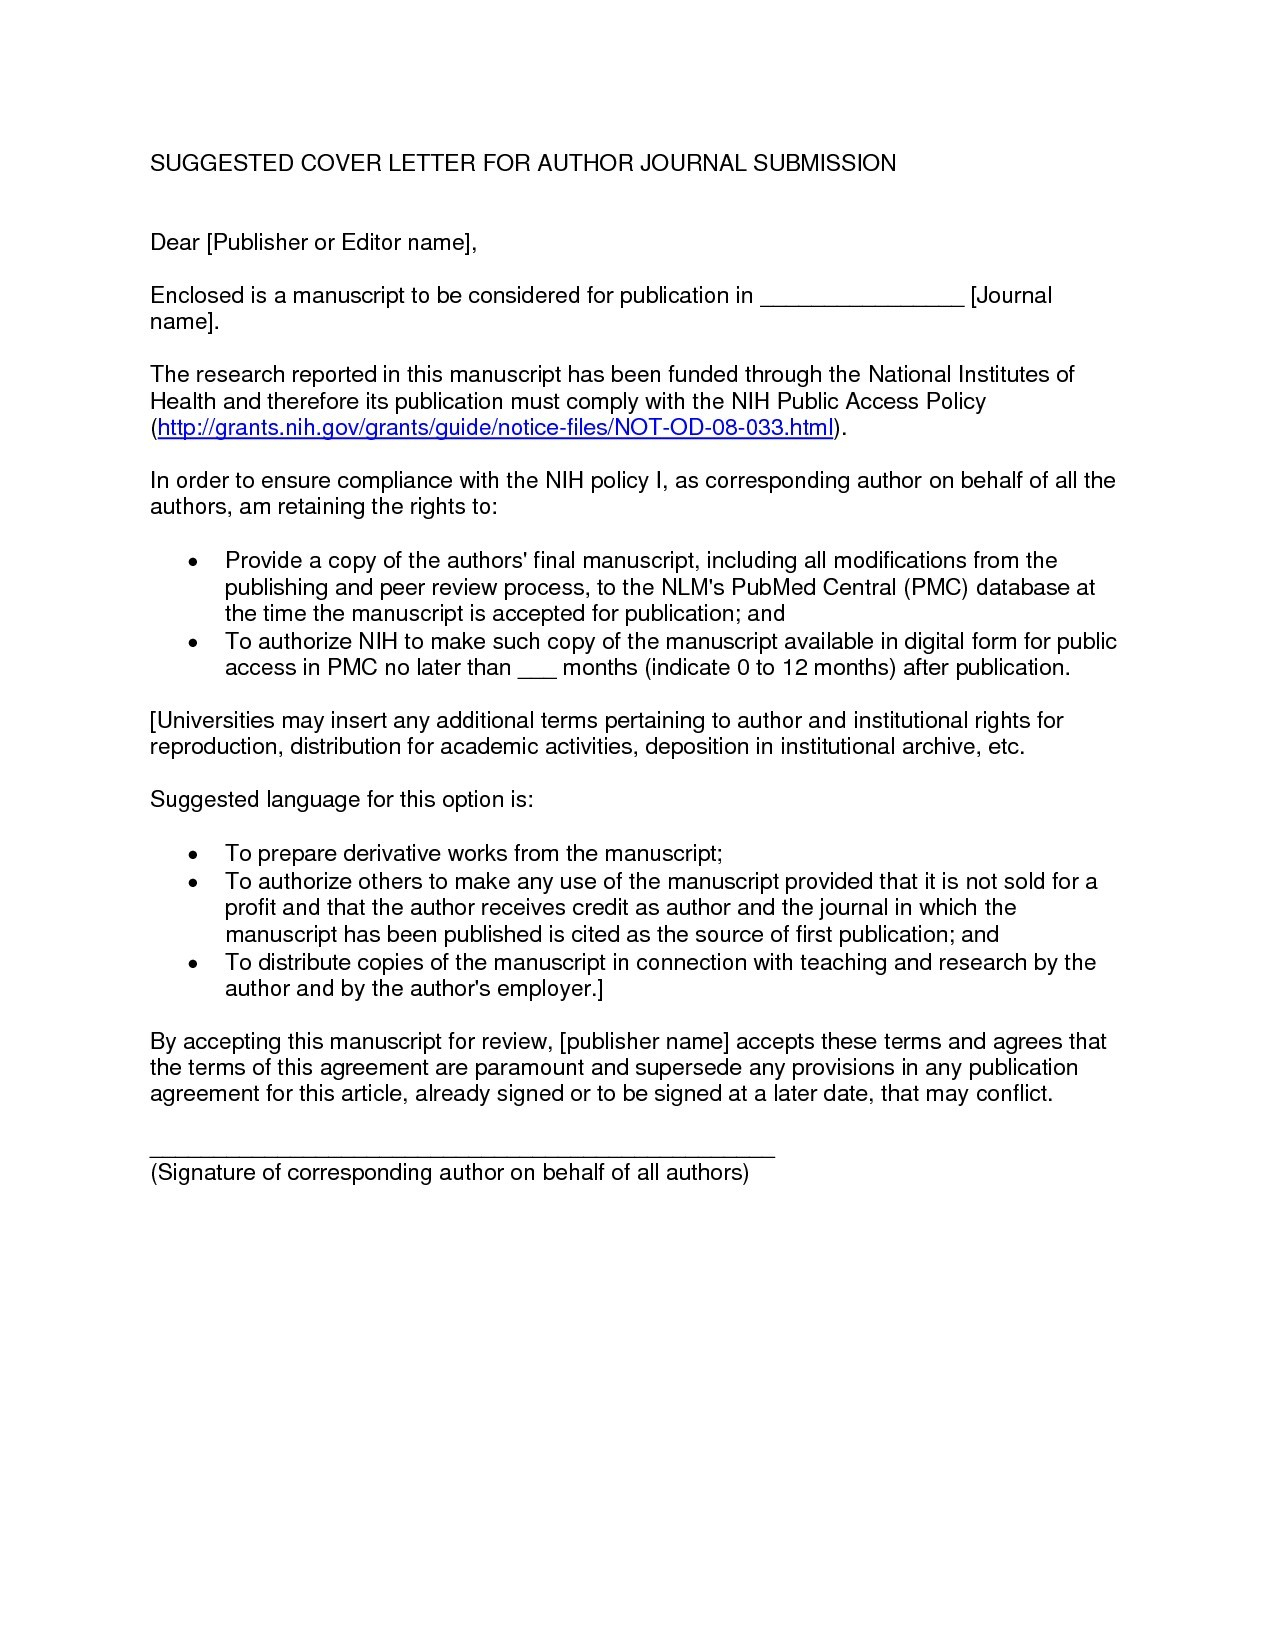 Letter Of Recommendation Request Template - Letter Re Mendation Request Template 17 Letter Template Example